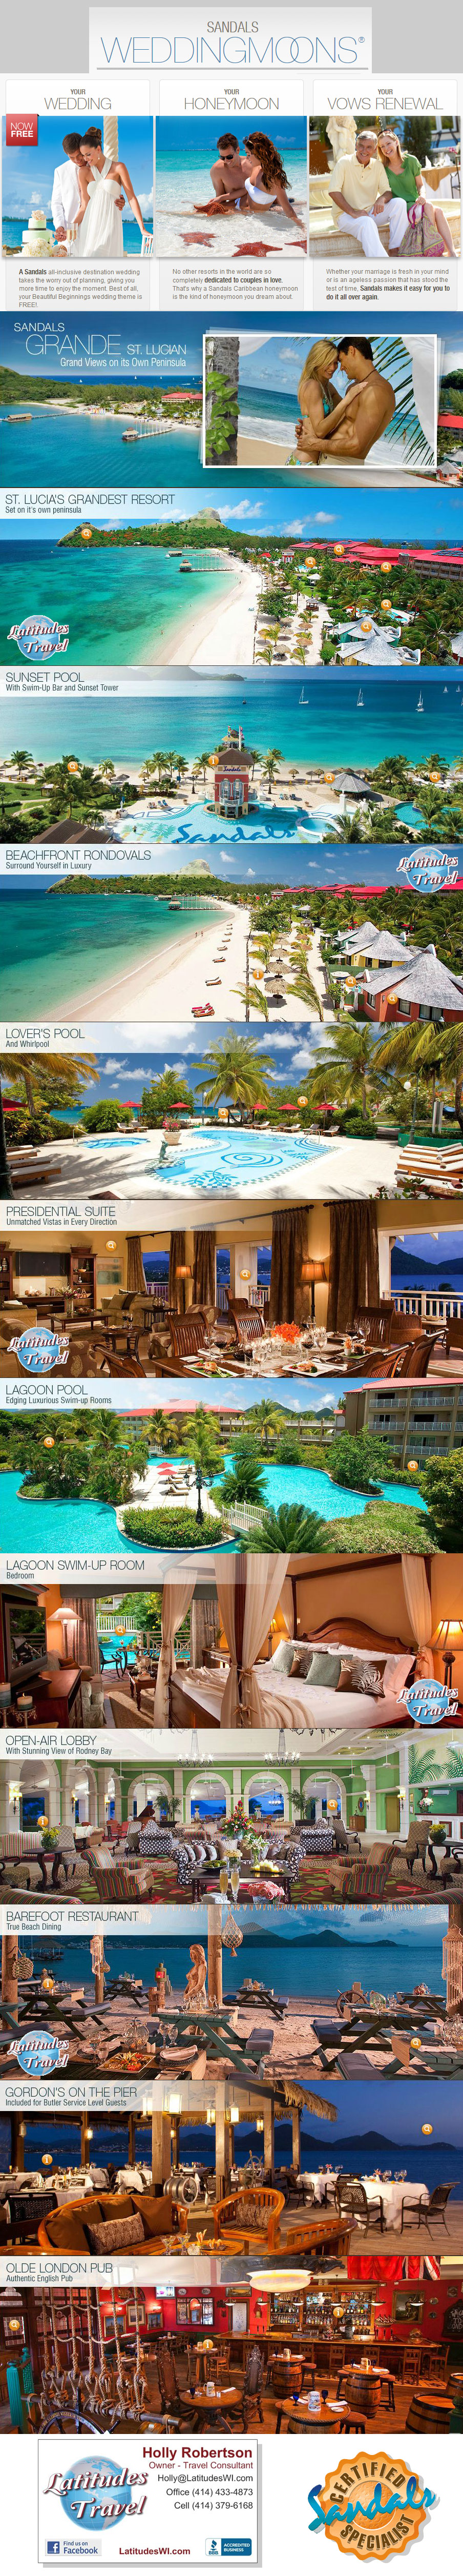 The Sandals Grande Resort on the Island of St. Lucia  Sandals Resorts and Destinations weddings now with many great new features and great offers too... including:  Free Beautiful Beginnings Wedding Ceremony  Free Honeymoon Packages  Contact one of LAtitudes Travel Sandals Resort Specialists Today  (414) 43-4873 or toll free (855) 433-4870  http://www.LatitudesWI.com  #Destinationwedding #wedding #Sandals #Resort #St.Lucia #Caribbean #Wedding #Honeymoon  #specials #free #Milwaukee #Wisconsin